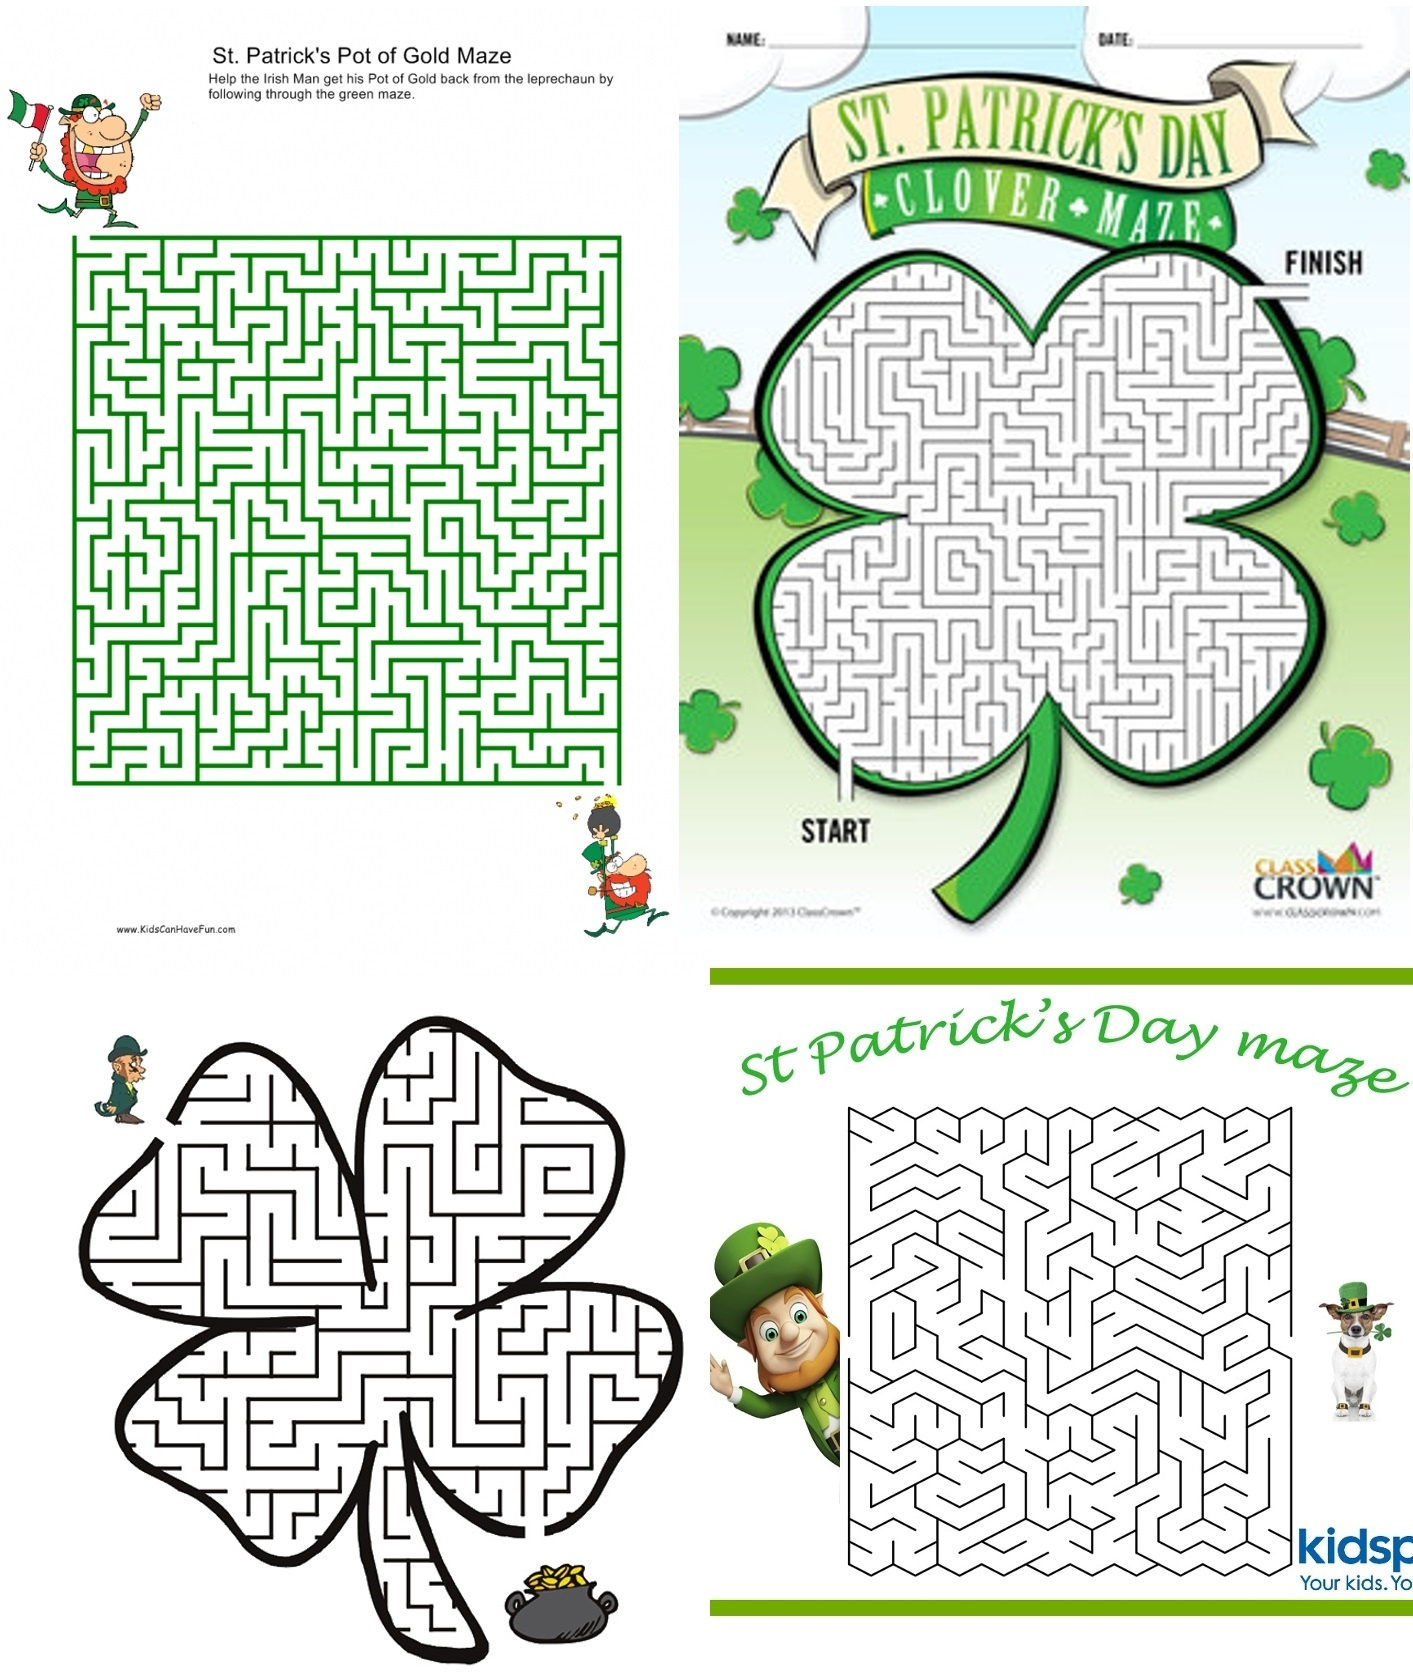 12 St. Patrick's Day Game Printables - Printables 4 Mom - Free Printable St Patrick's Day Mazes